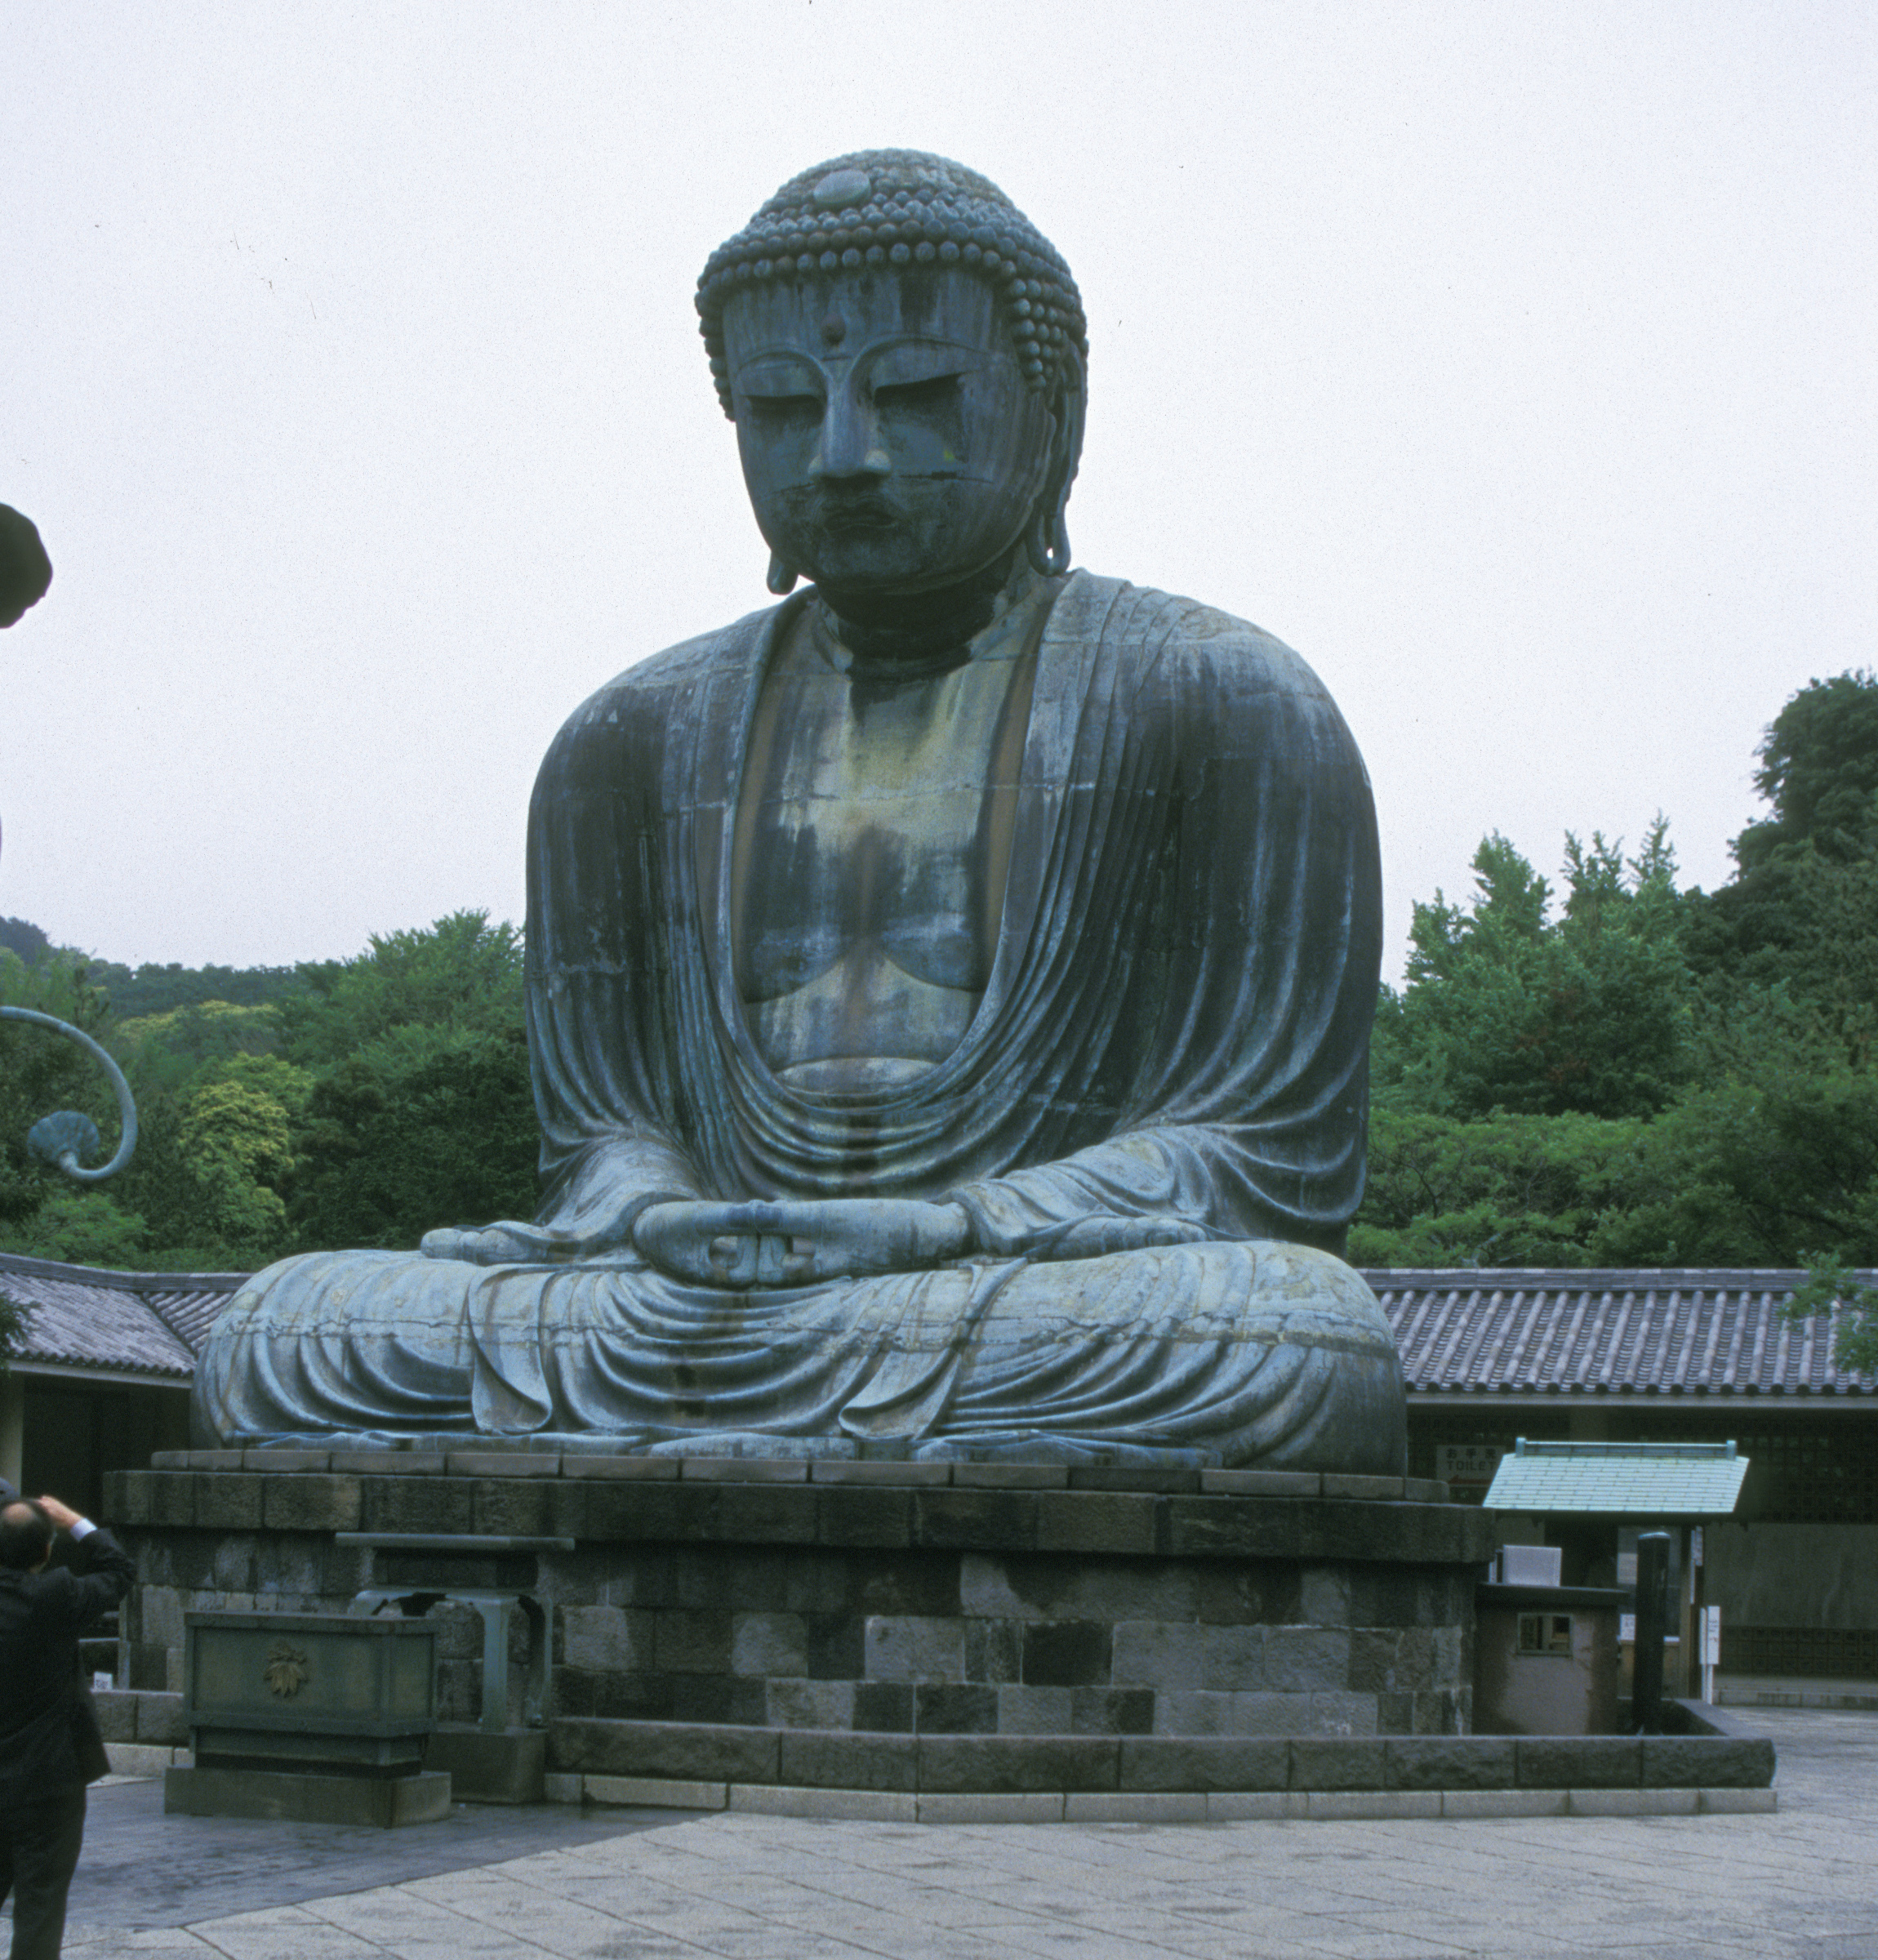 Great Buddha (Daibutsu) at Kamakura, Japan